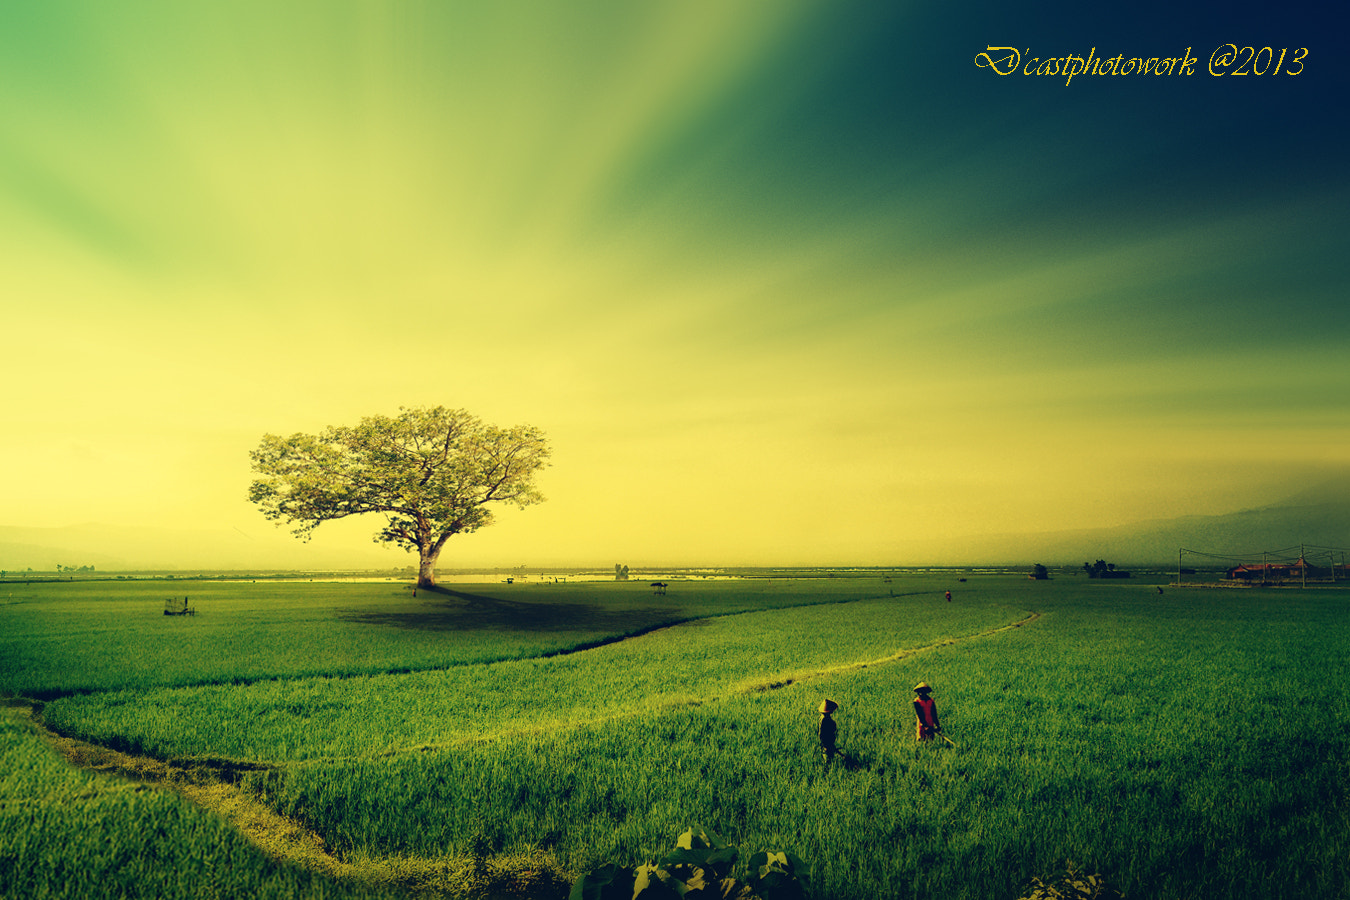 Photograph Somewhere by D'cast Photowork on 500px